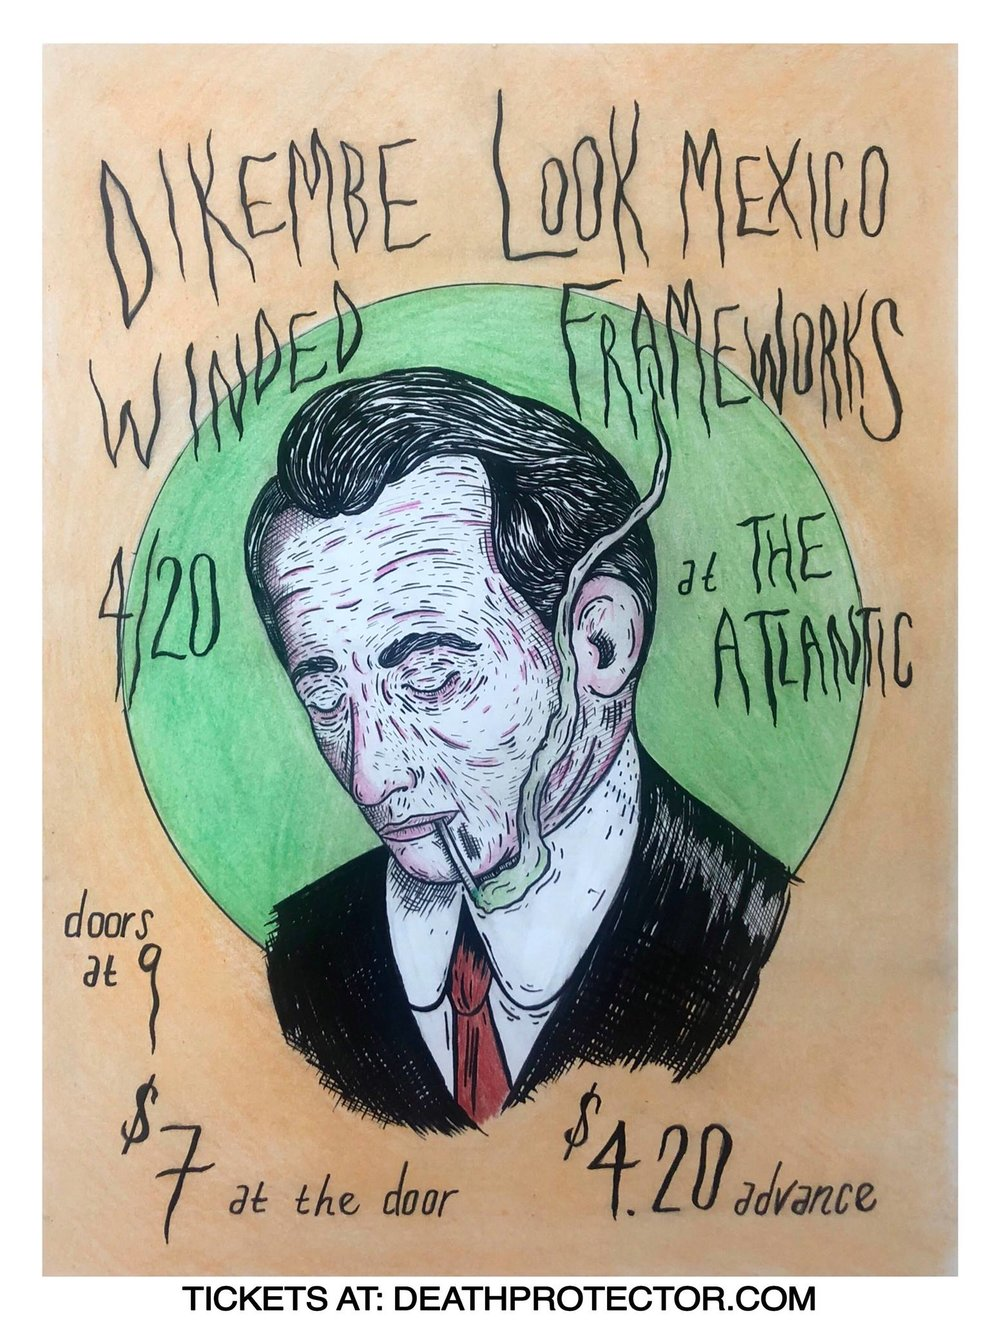 Friday, April 20 2018   Dikembe  /  https://dikembe.bandcamp.com/   Look Mexico  /  https://lookmexico.bandcamp.com/  Winded /  https://winded.bandcamp.com/   Frameworks  /  https://frameworks.bandcamp.com/   Doors at 9pm $4.20 adv/ $7 dos advance tickets available at:  www.deathprotector.com